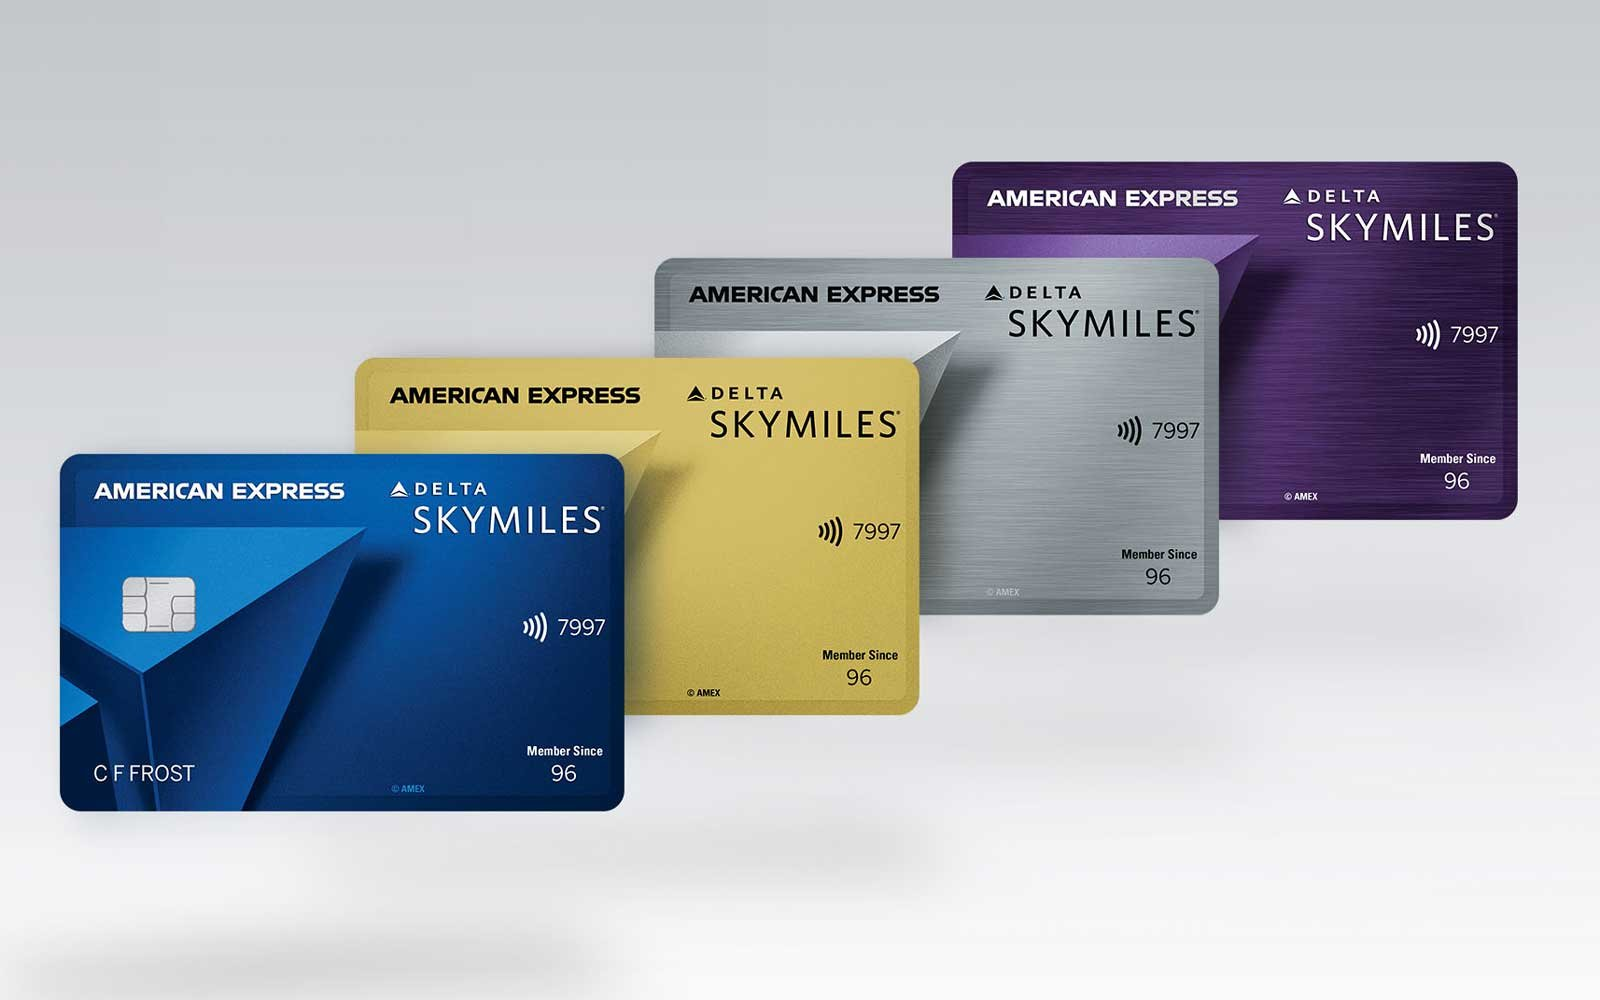 Four levels of American Express Delta Sky Miles Consumer Credit Cards (Blue, Gold, Silver, Purple)